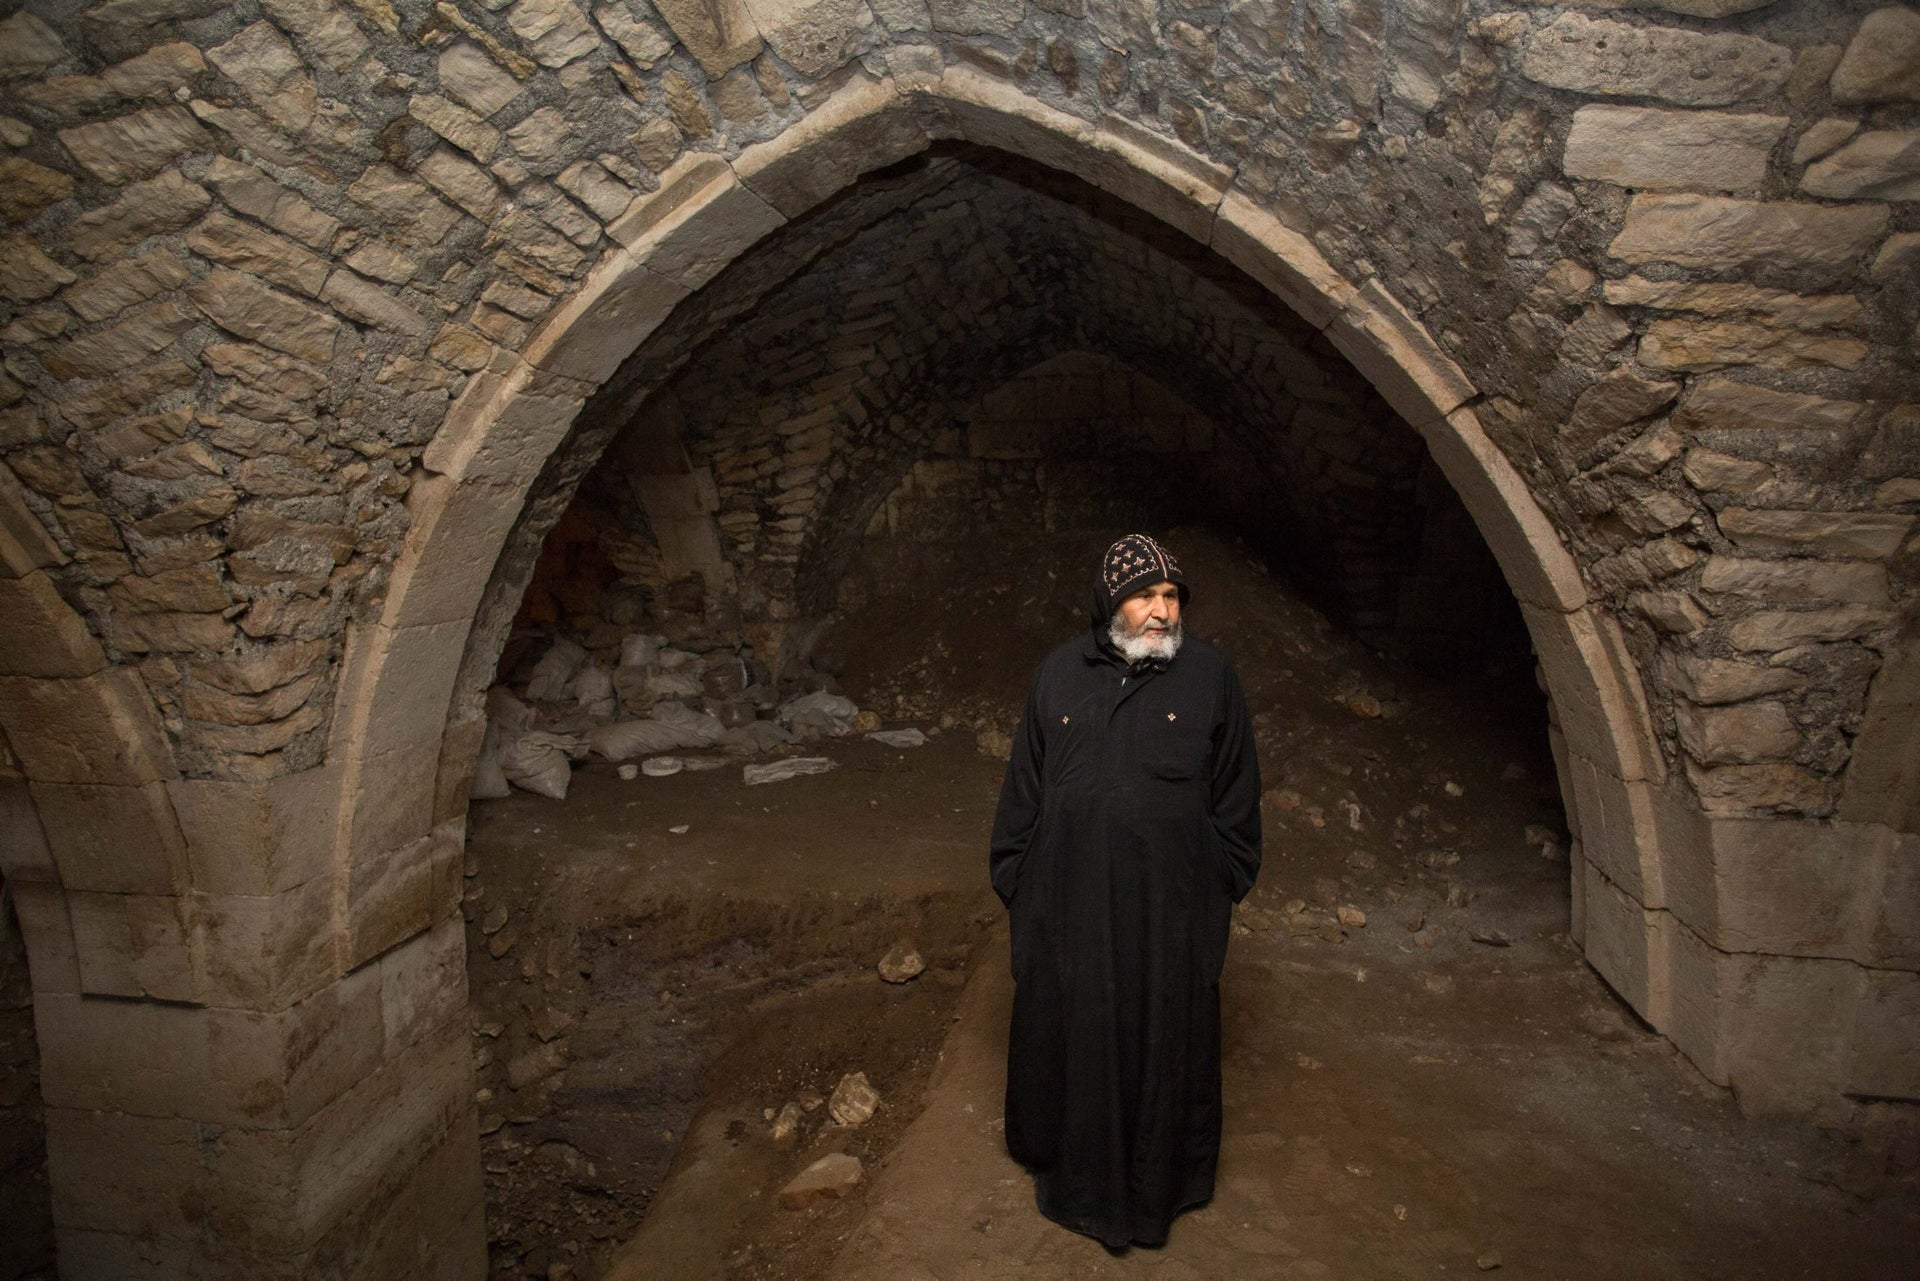 Coptic monk at Church of the Holy Sepulchre in Jerusalem, February 13, 2016.